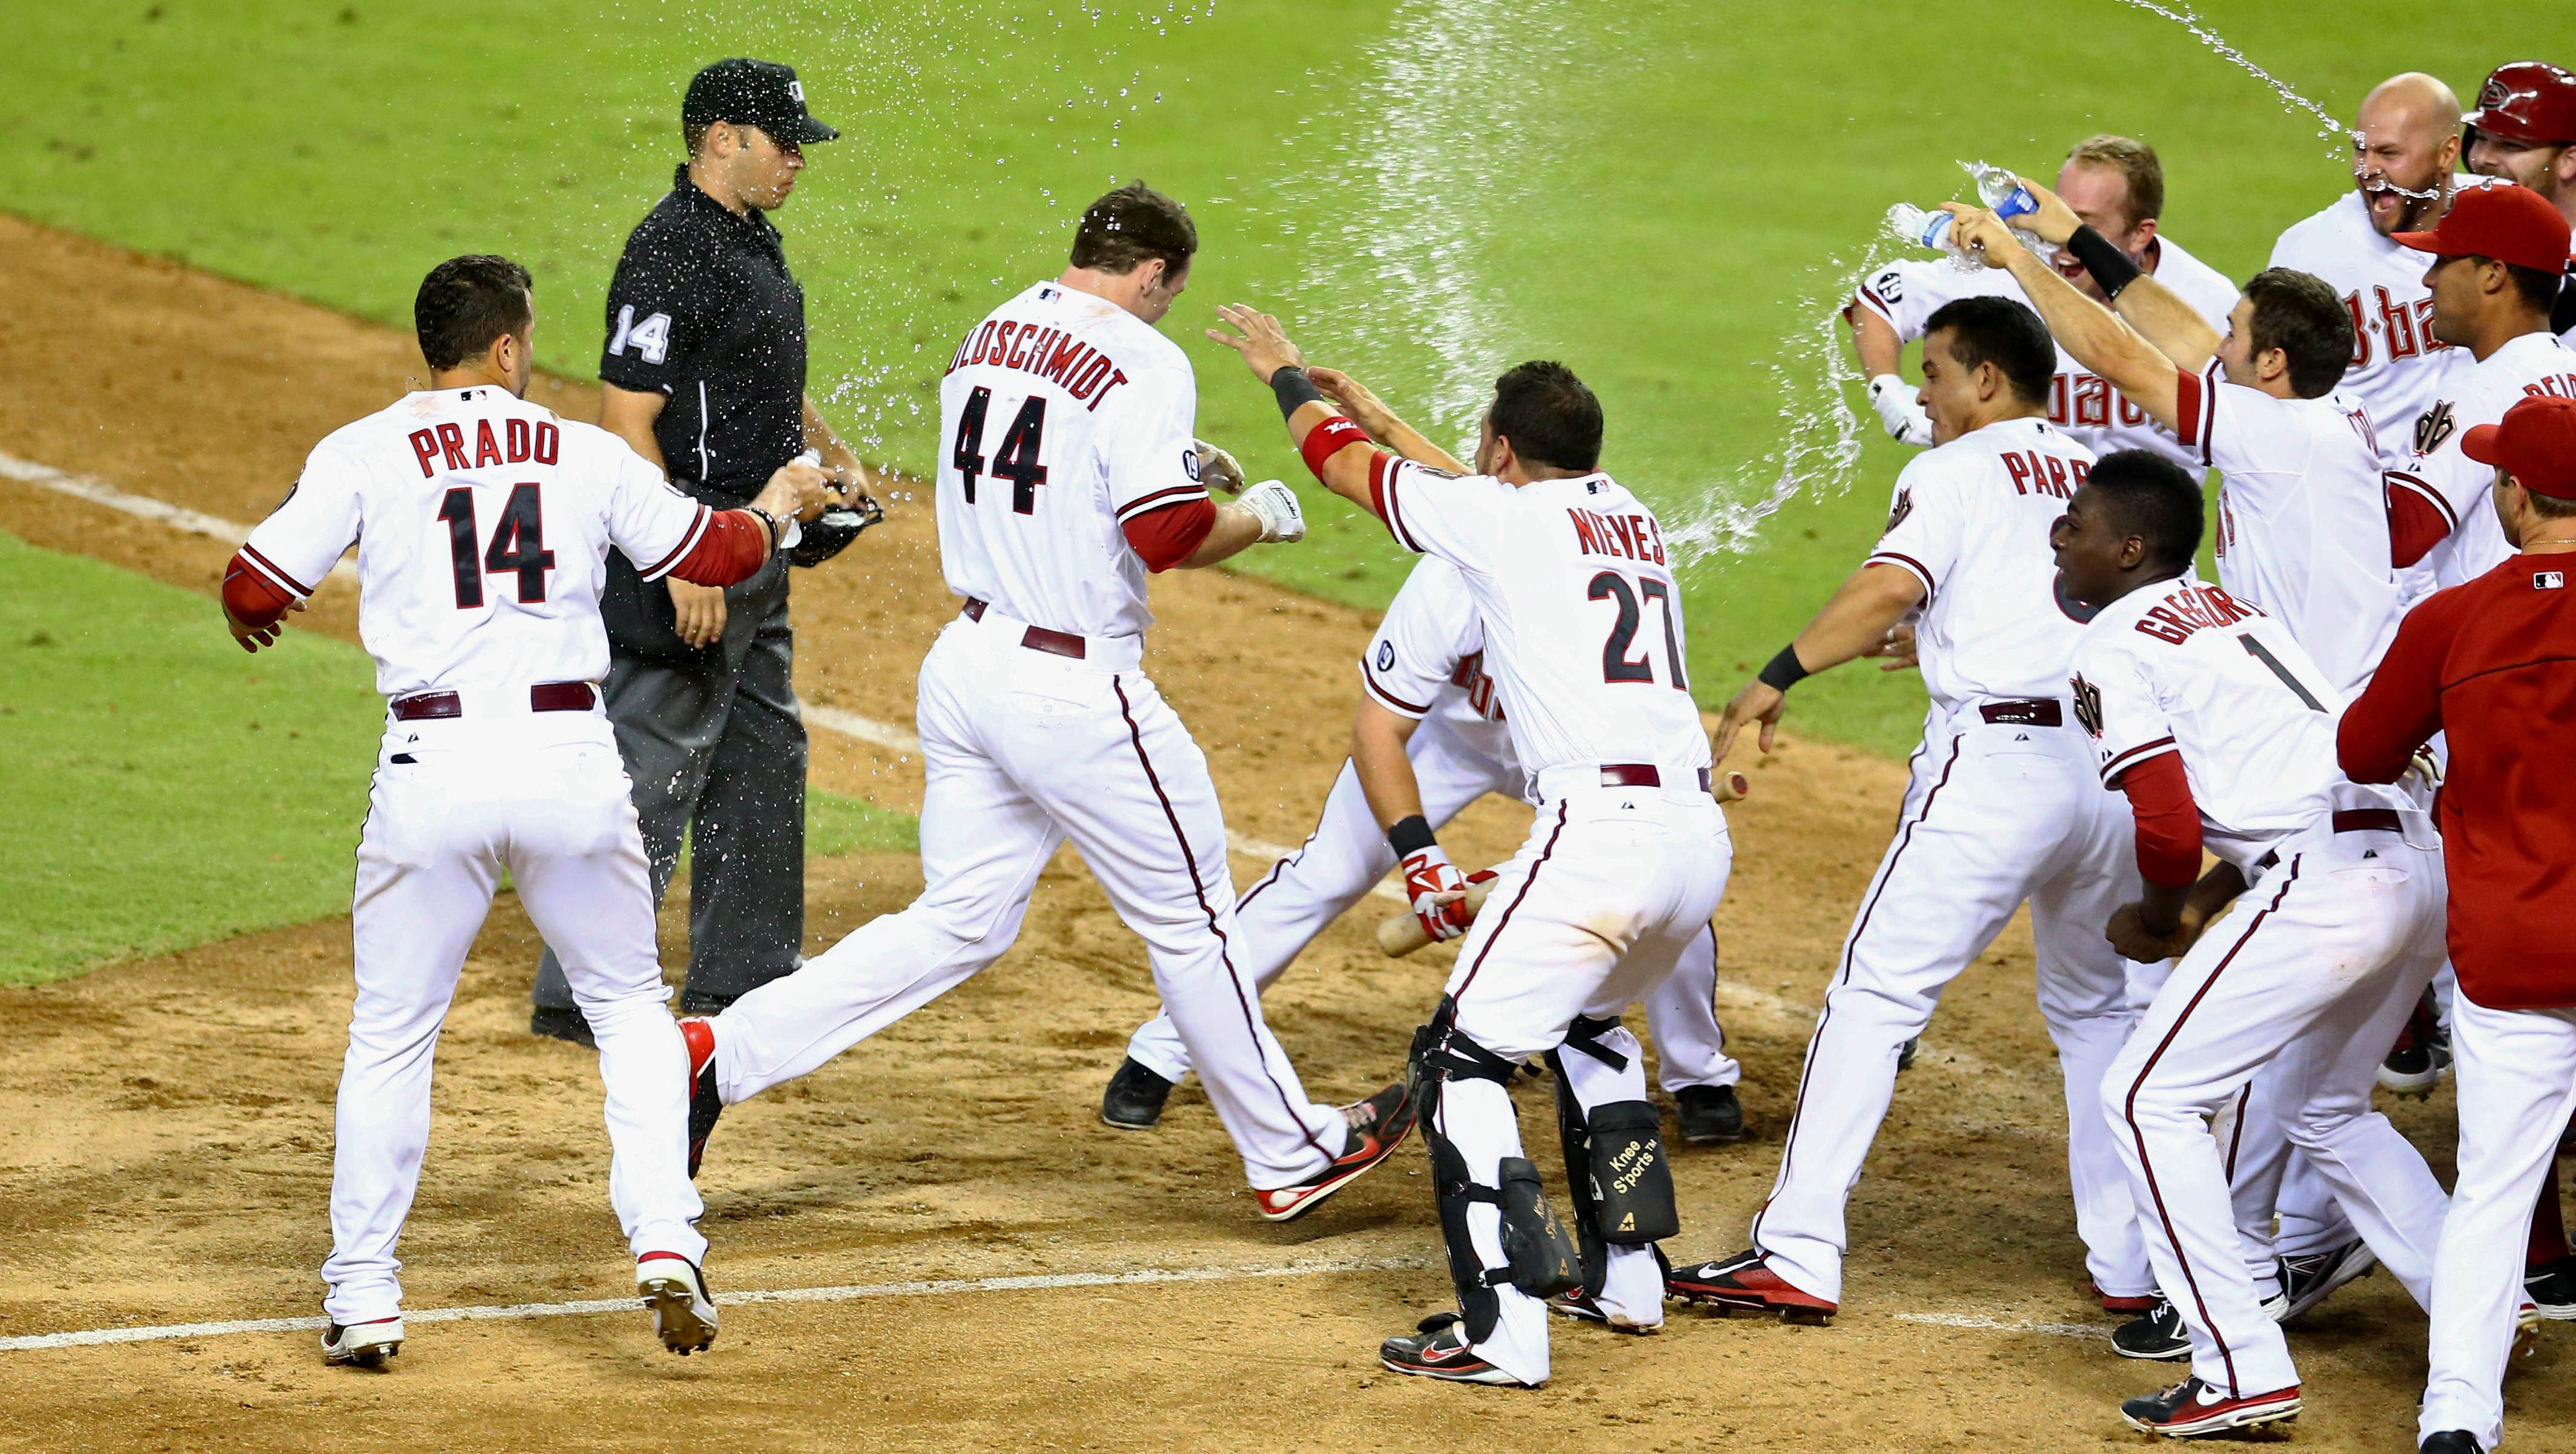 Aug. 9: Diamondbacks' Paul Goldschmidt is congratulated by teammates after hitting a walk-off home run in the ninth inning against the Mets at Chase Field.